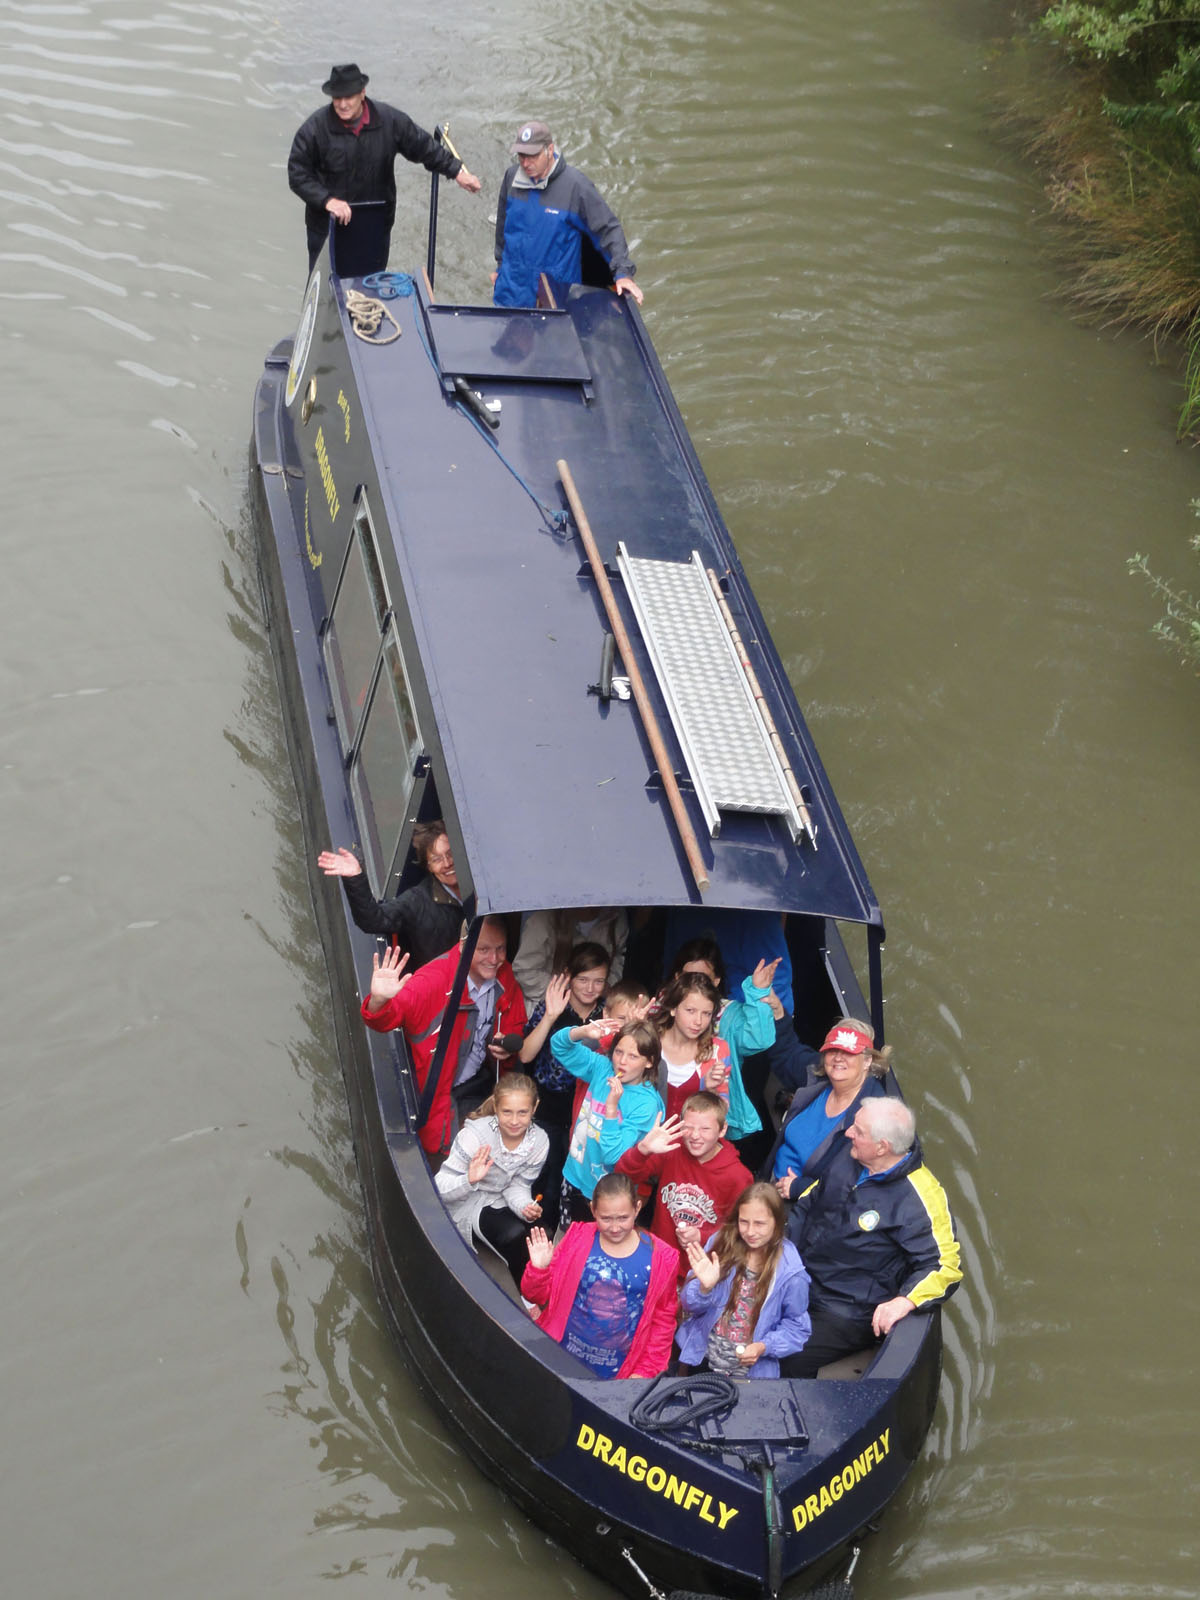 View looking down on trip boat Dragonfly from bridge, passengers waving